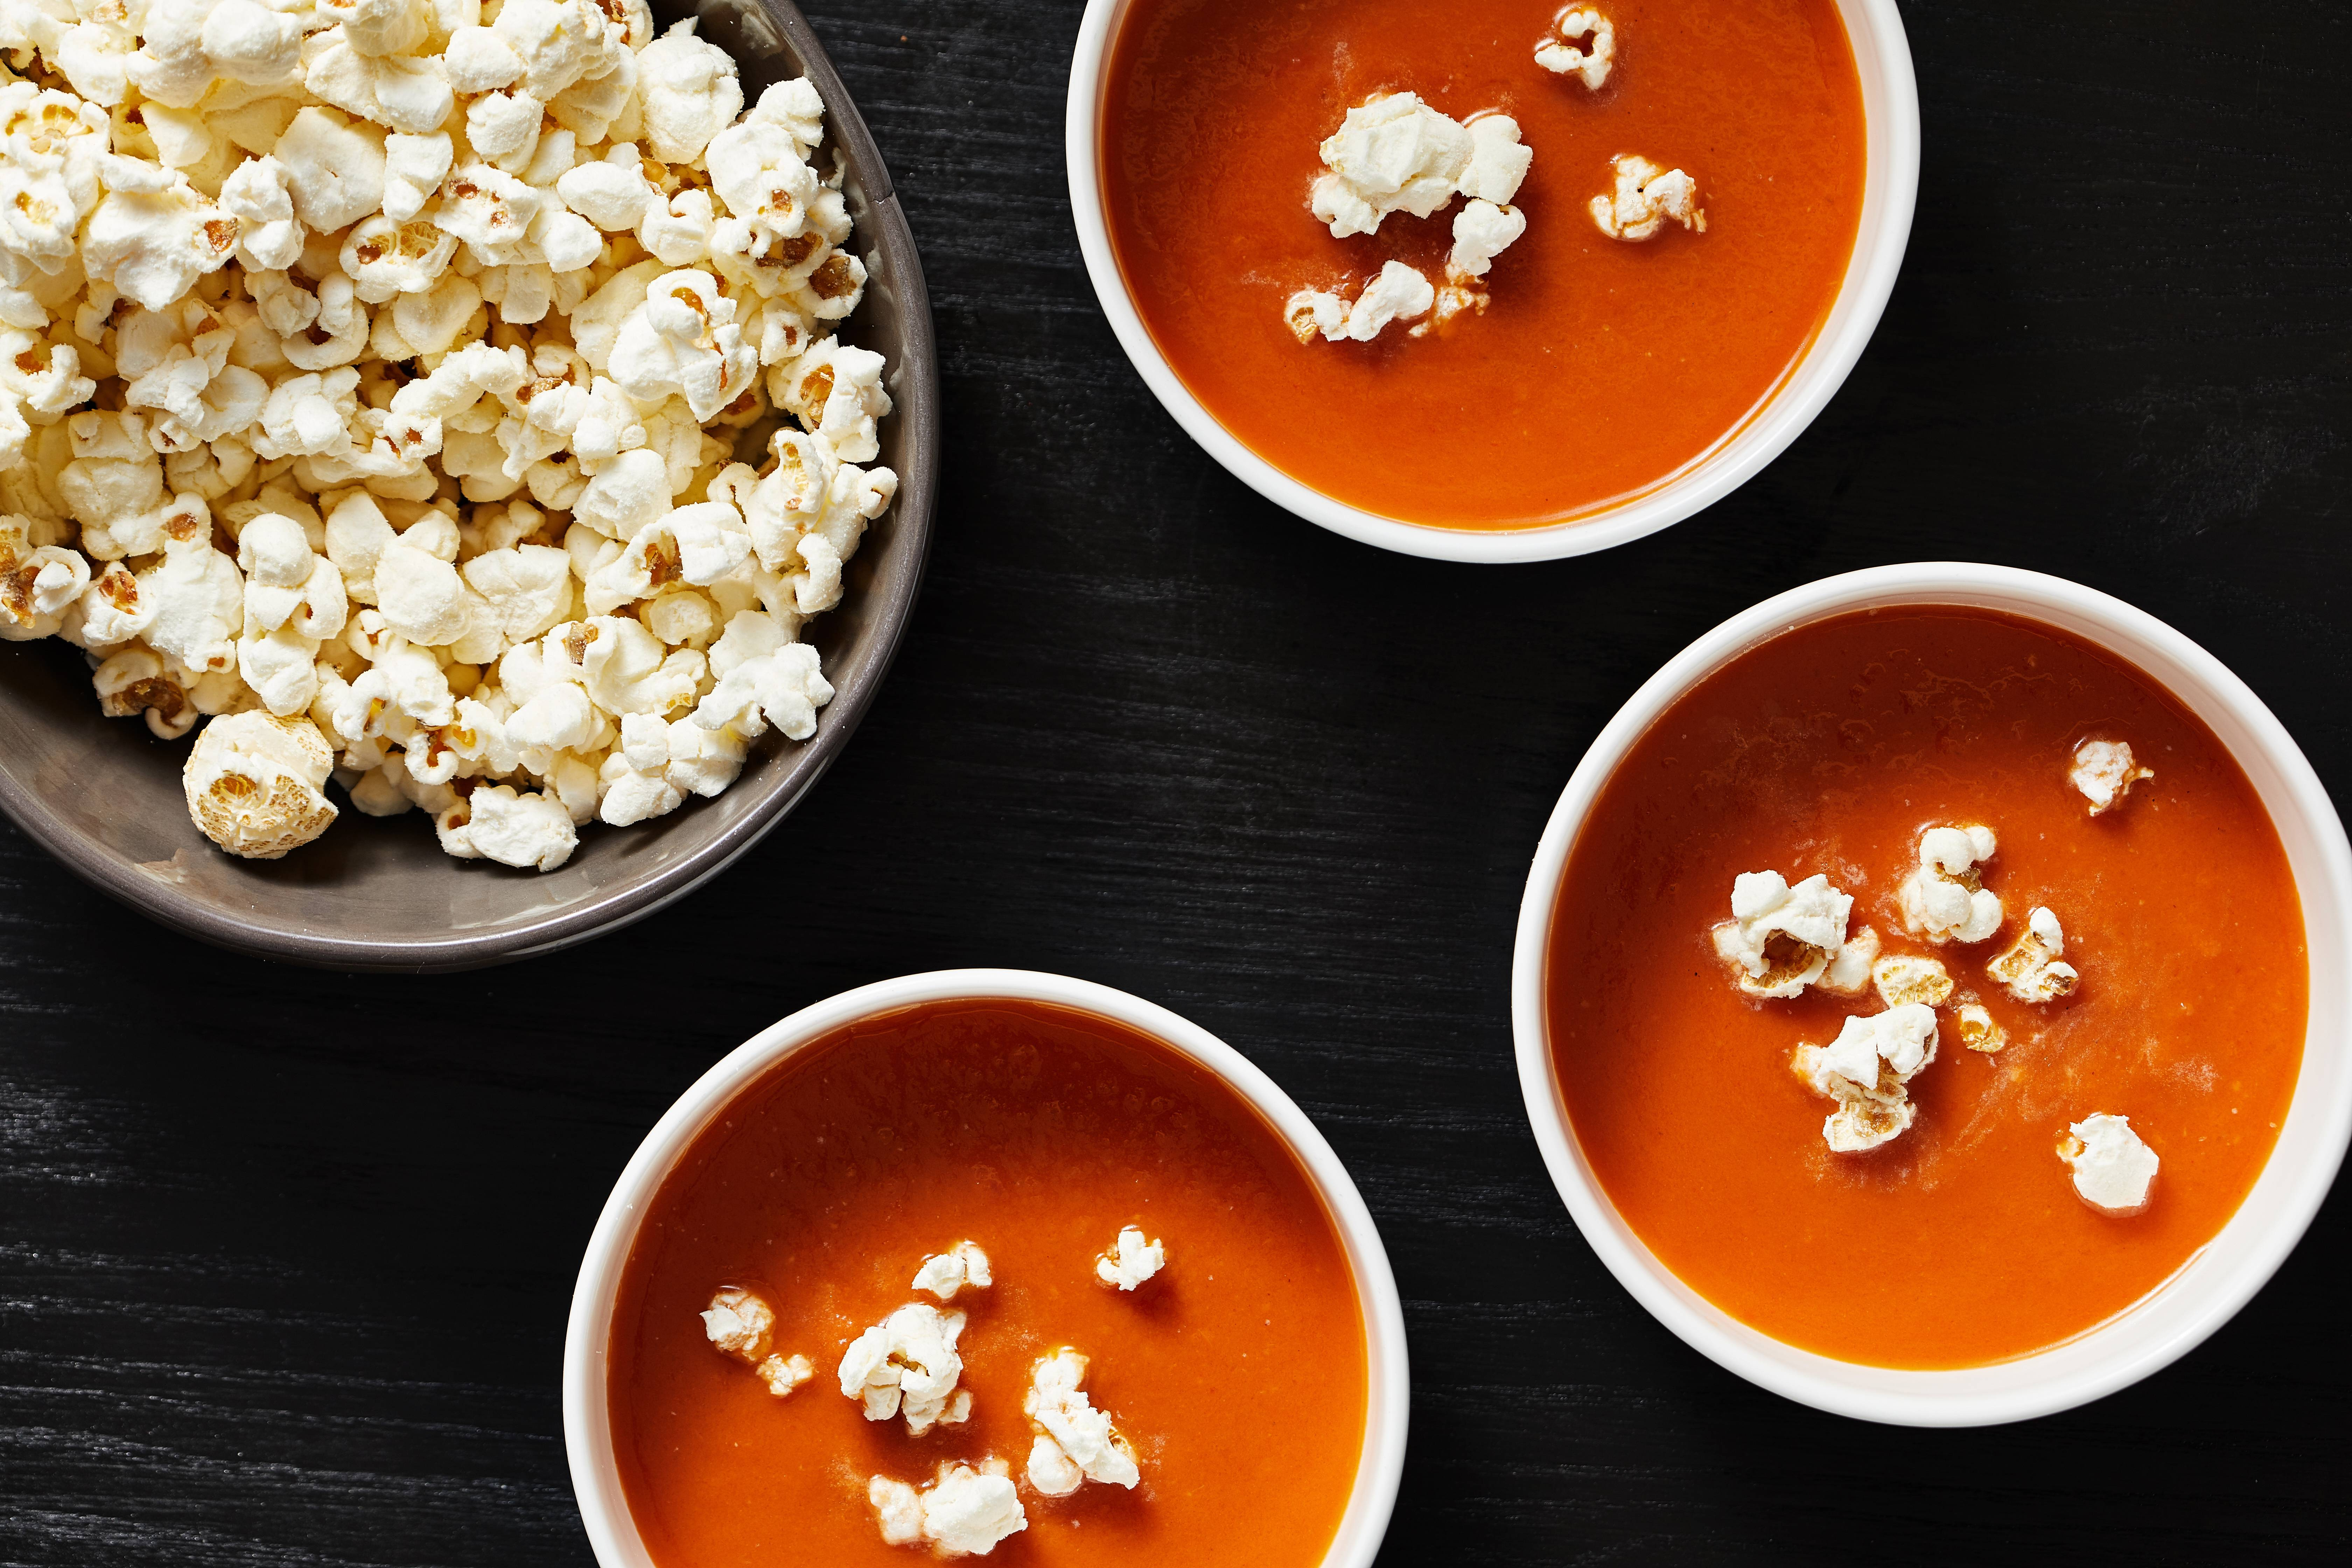 Nourish: Make a quick, comforting tomato soup full of pantry staples